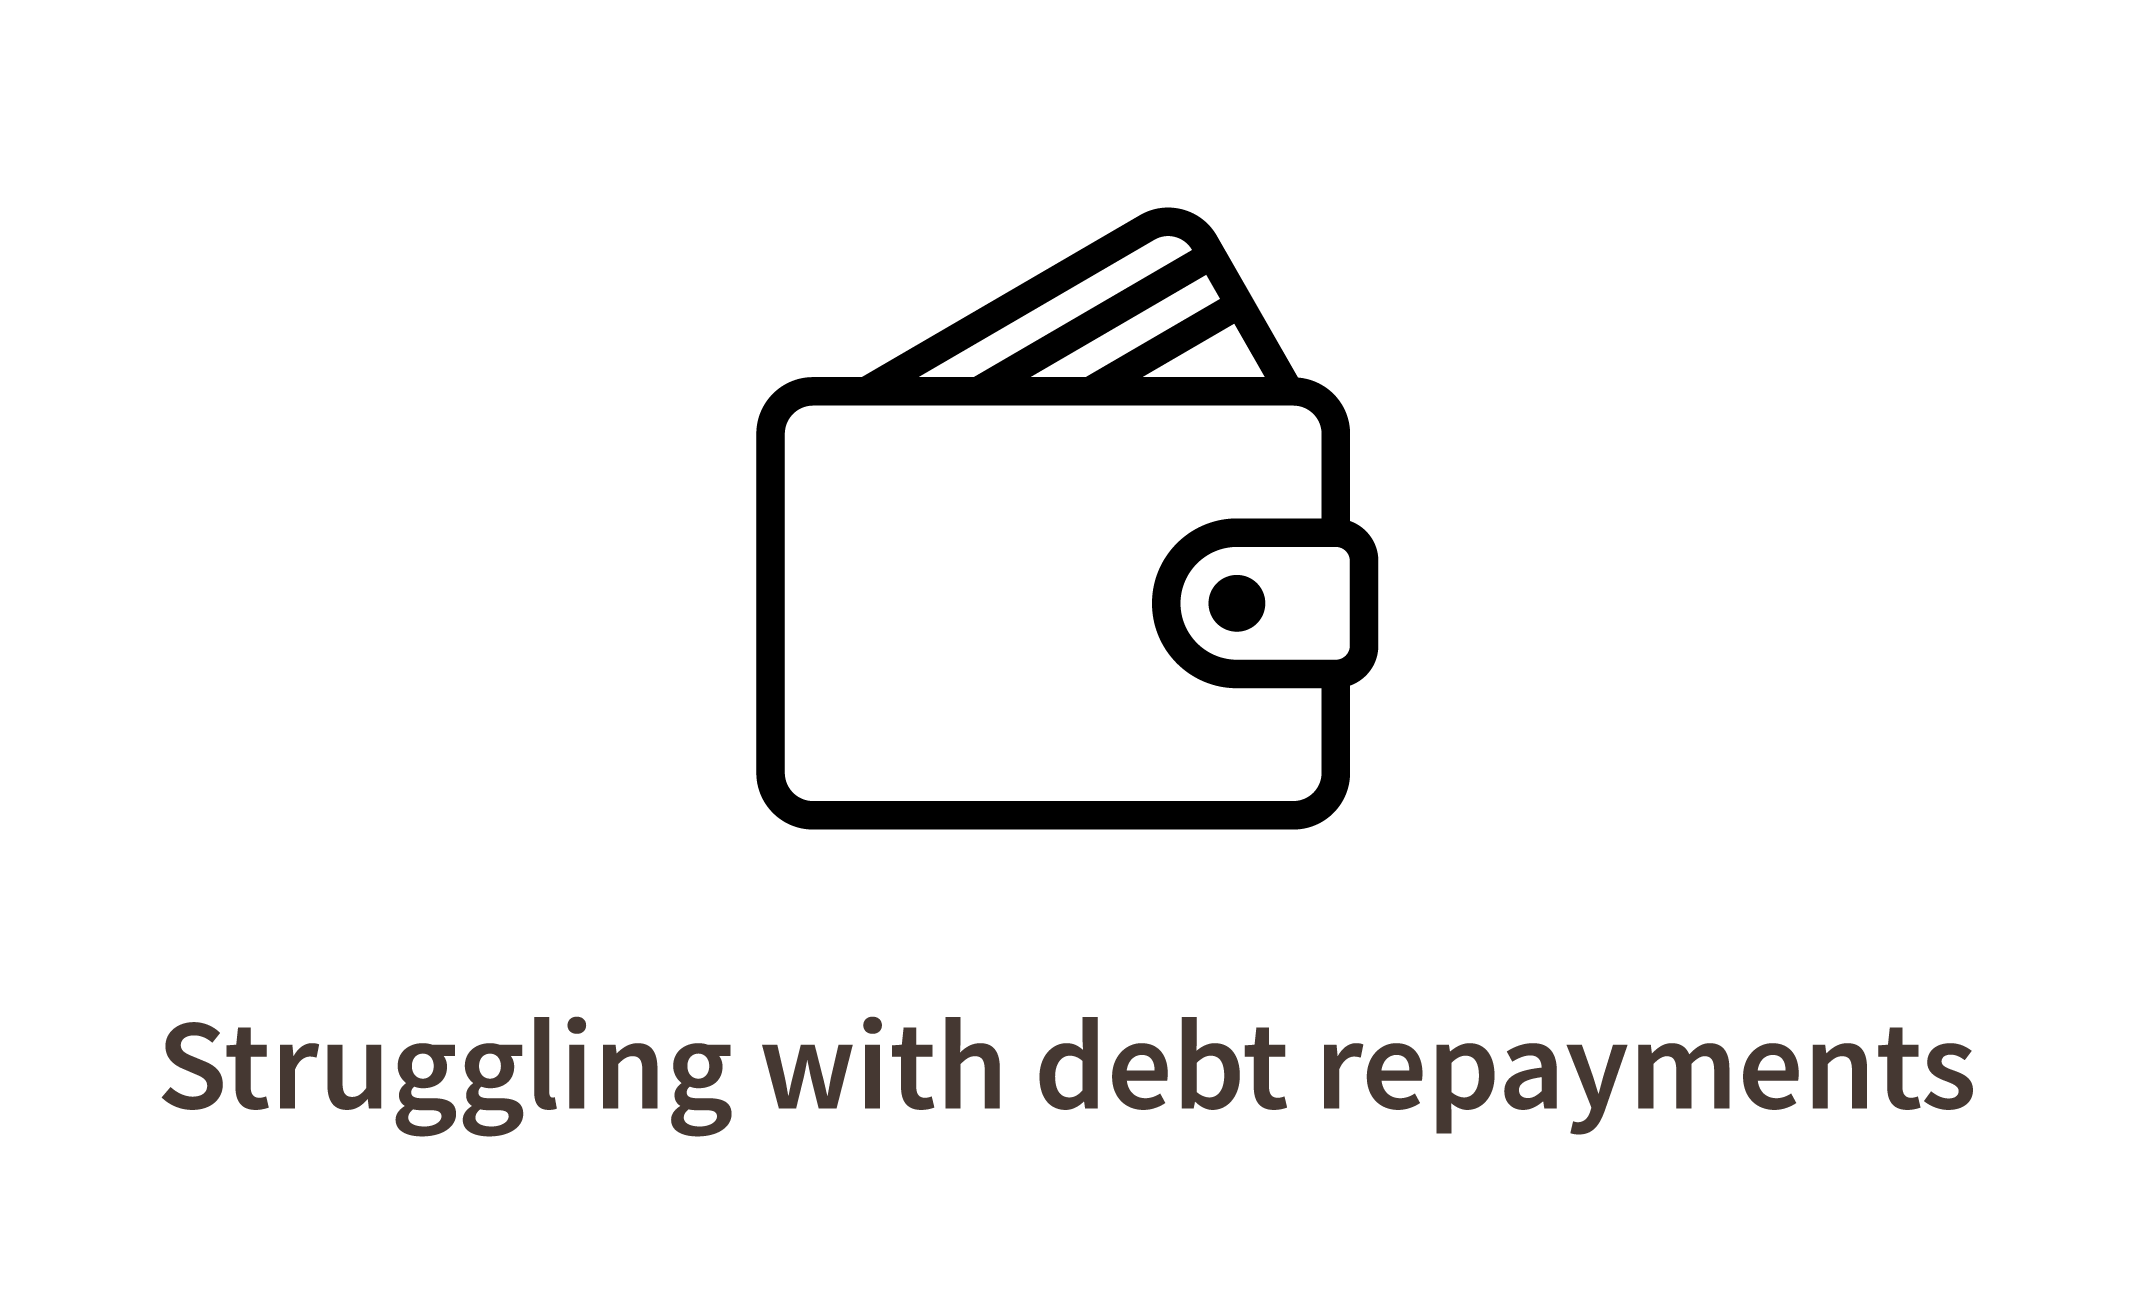 Struggling with debt repayments